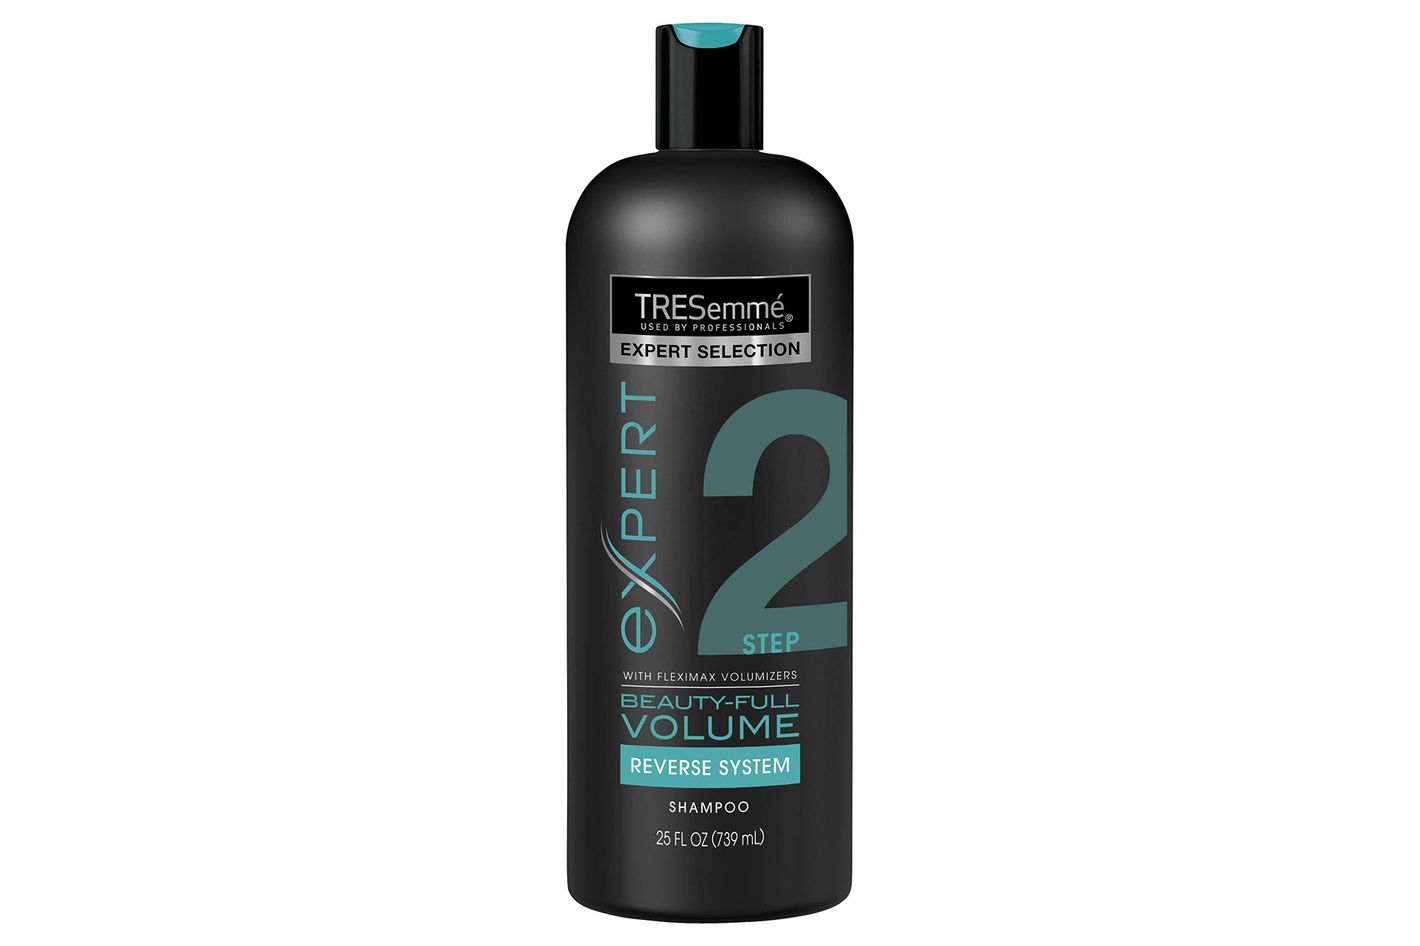 Tresemmé Beauty-Full Volume Pre-Wash Conditioner and Shampoo